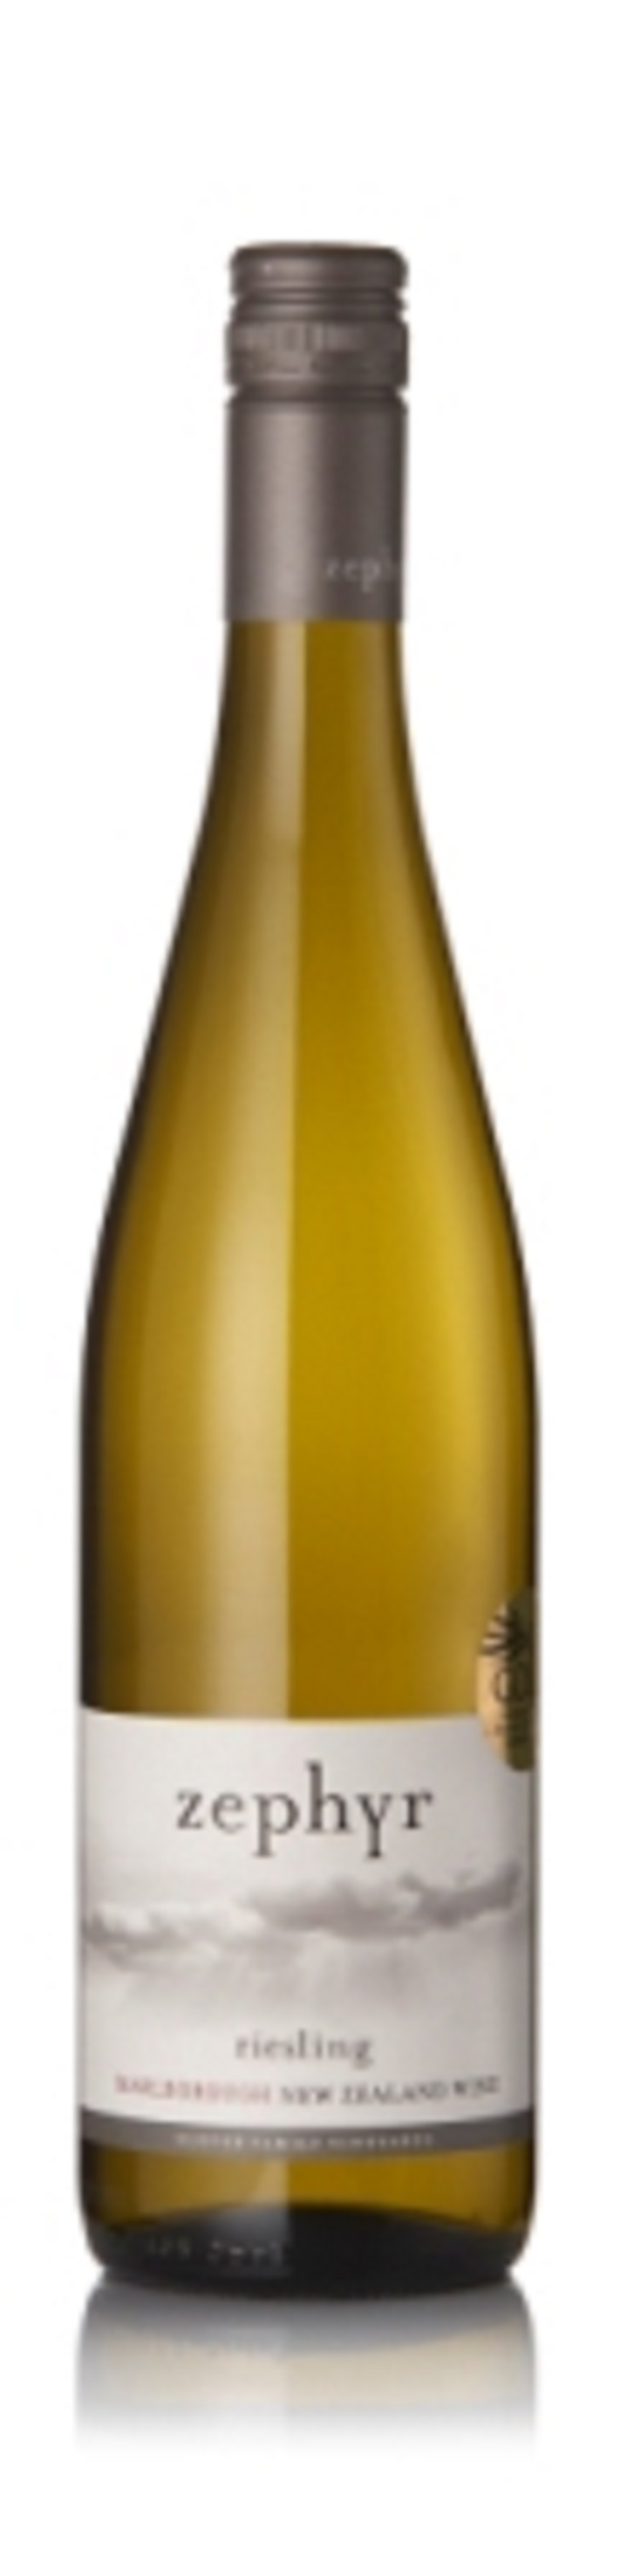 Zephyr-Riesling-New-Zealand